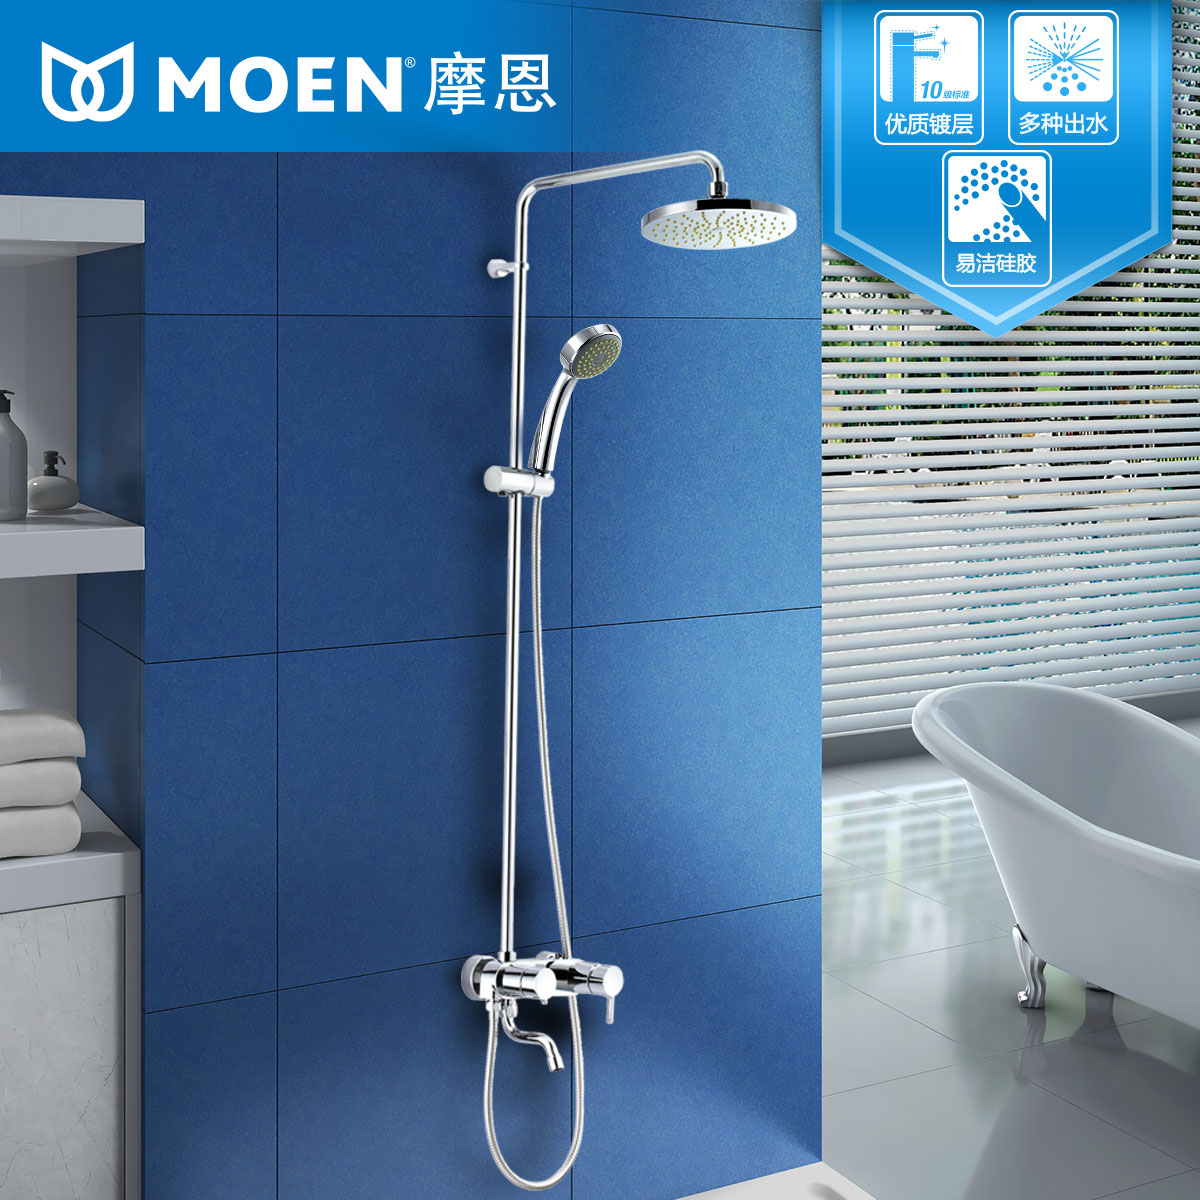 Buy Moen moen shower all copper pressurized hot and cold shower head ...